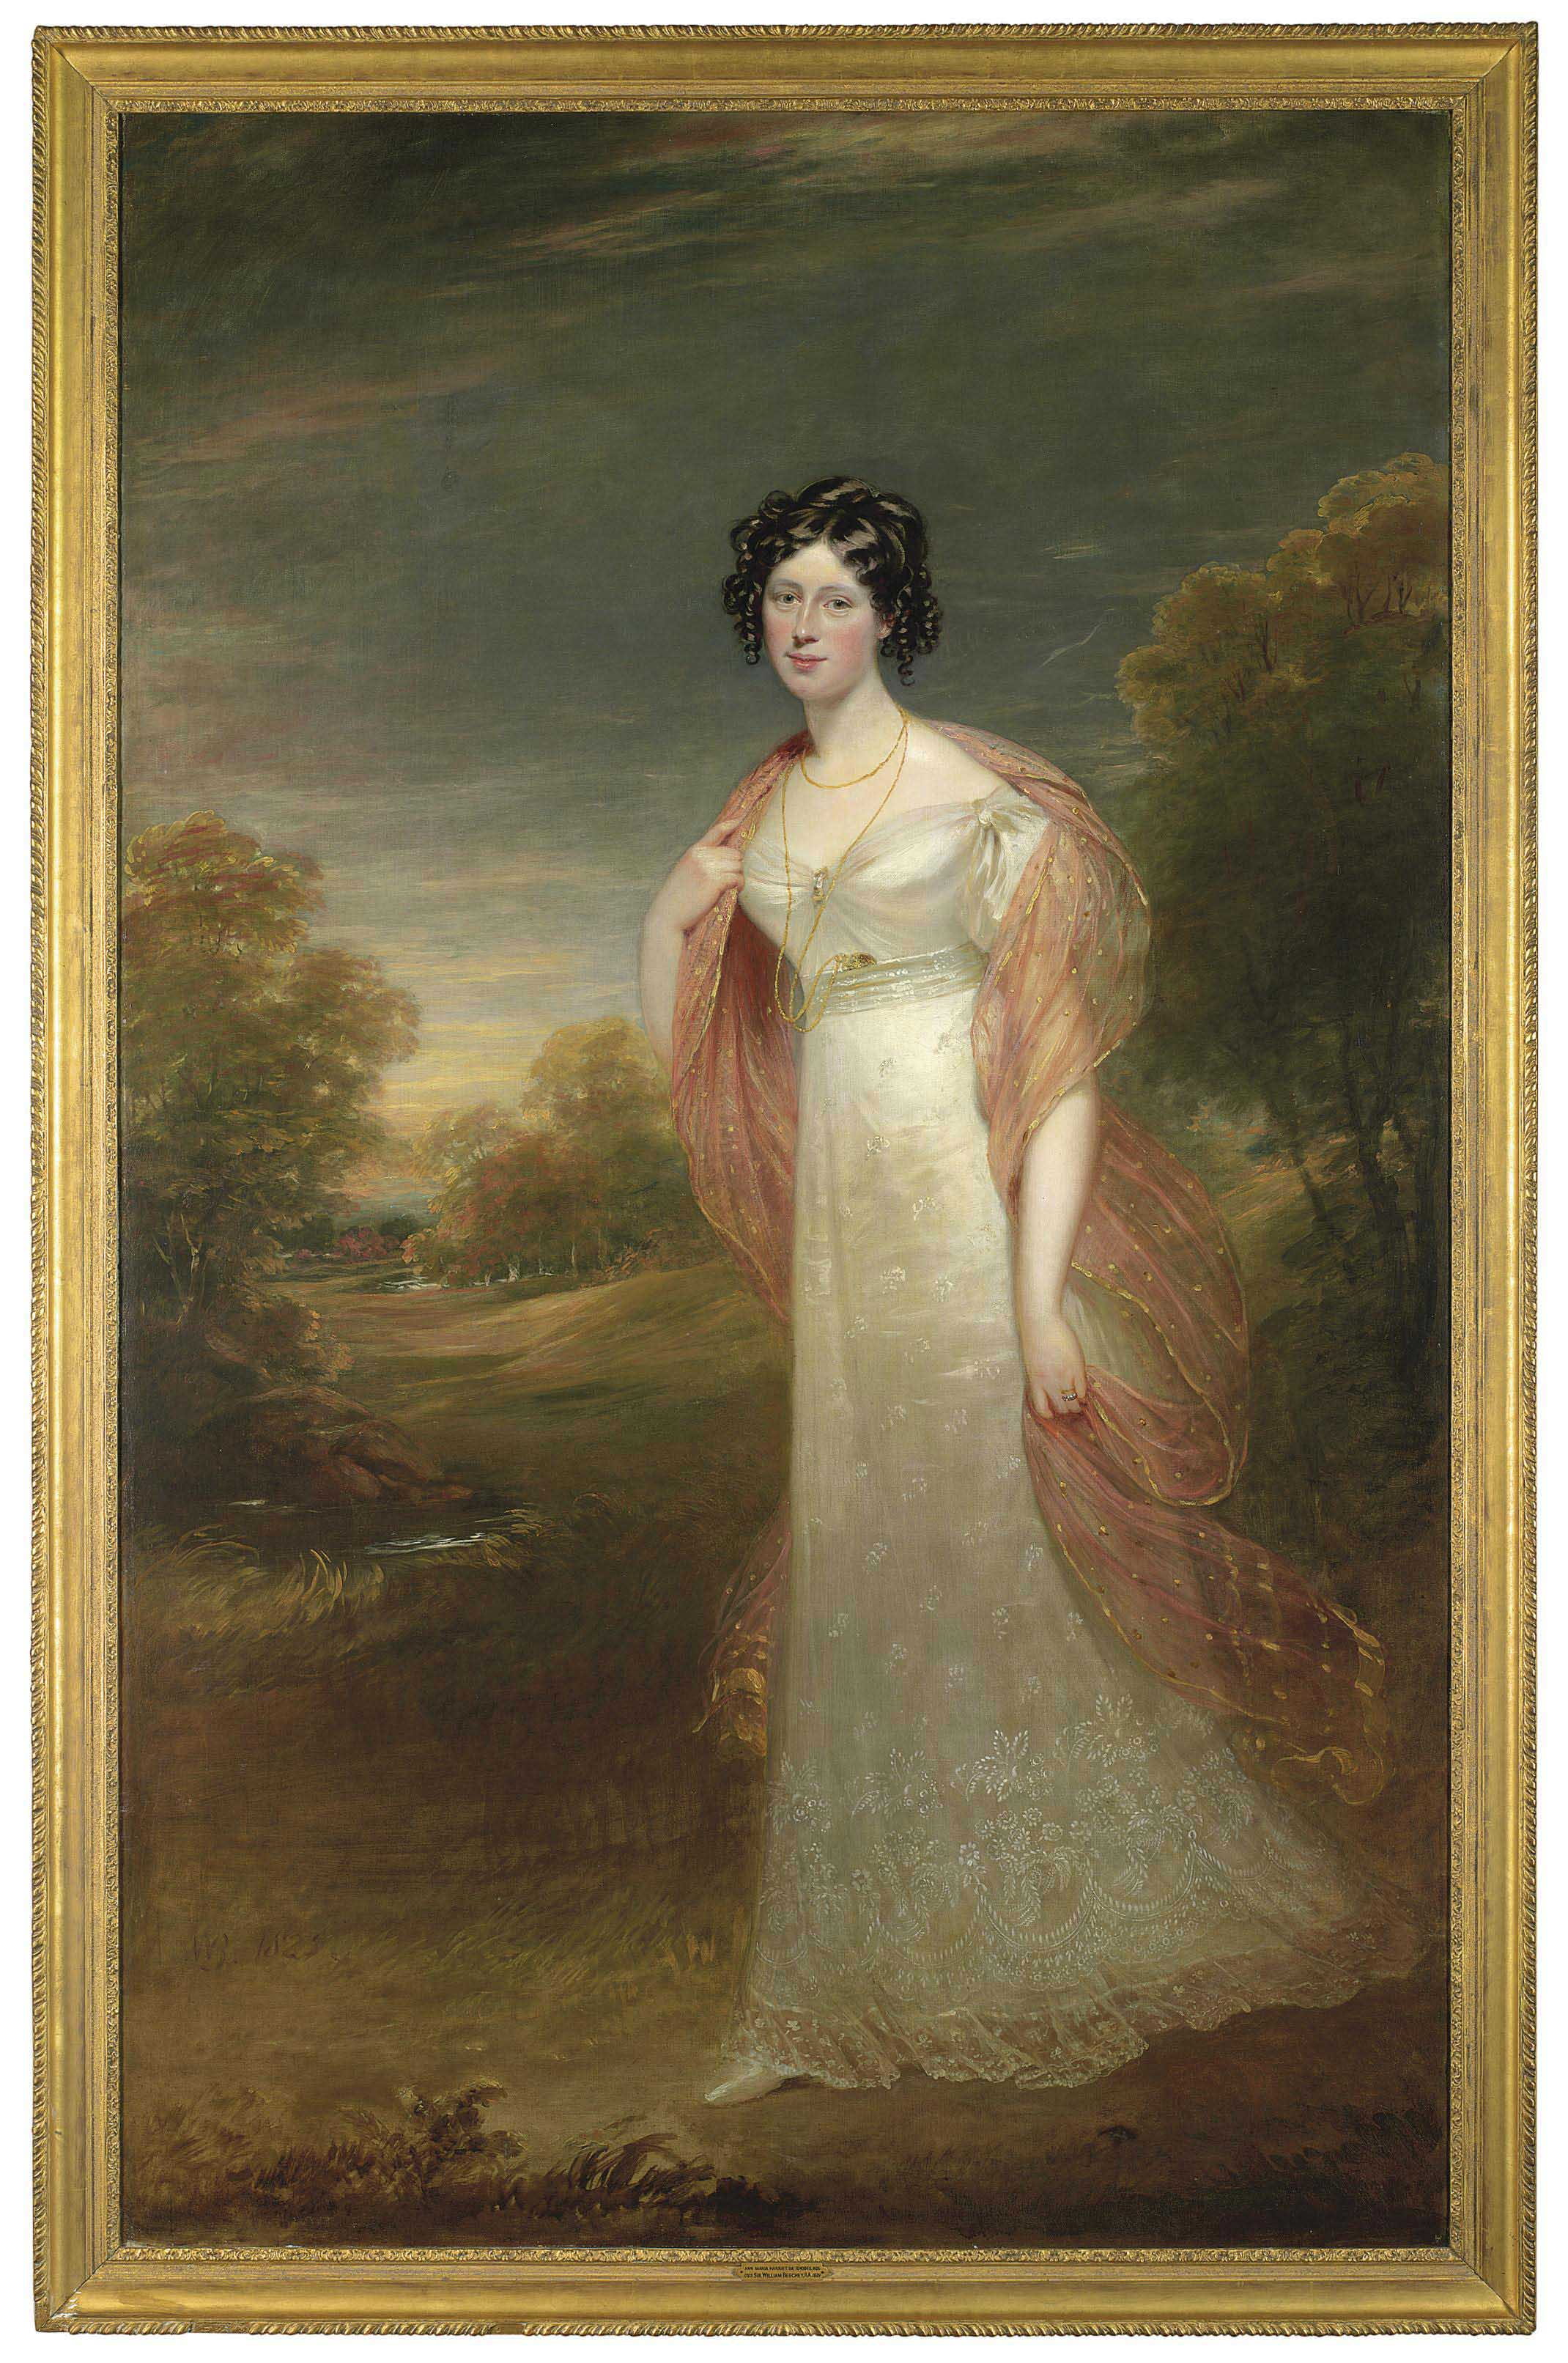 Portrait of Ann Maria Harriet de Rhodes (1793-1849), full-length, in a white dress and pink chiffon wrap, a wooded landscape beyond